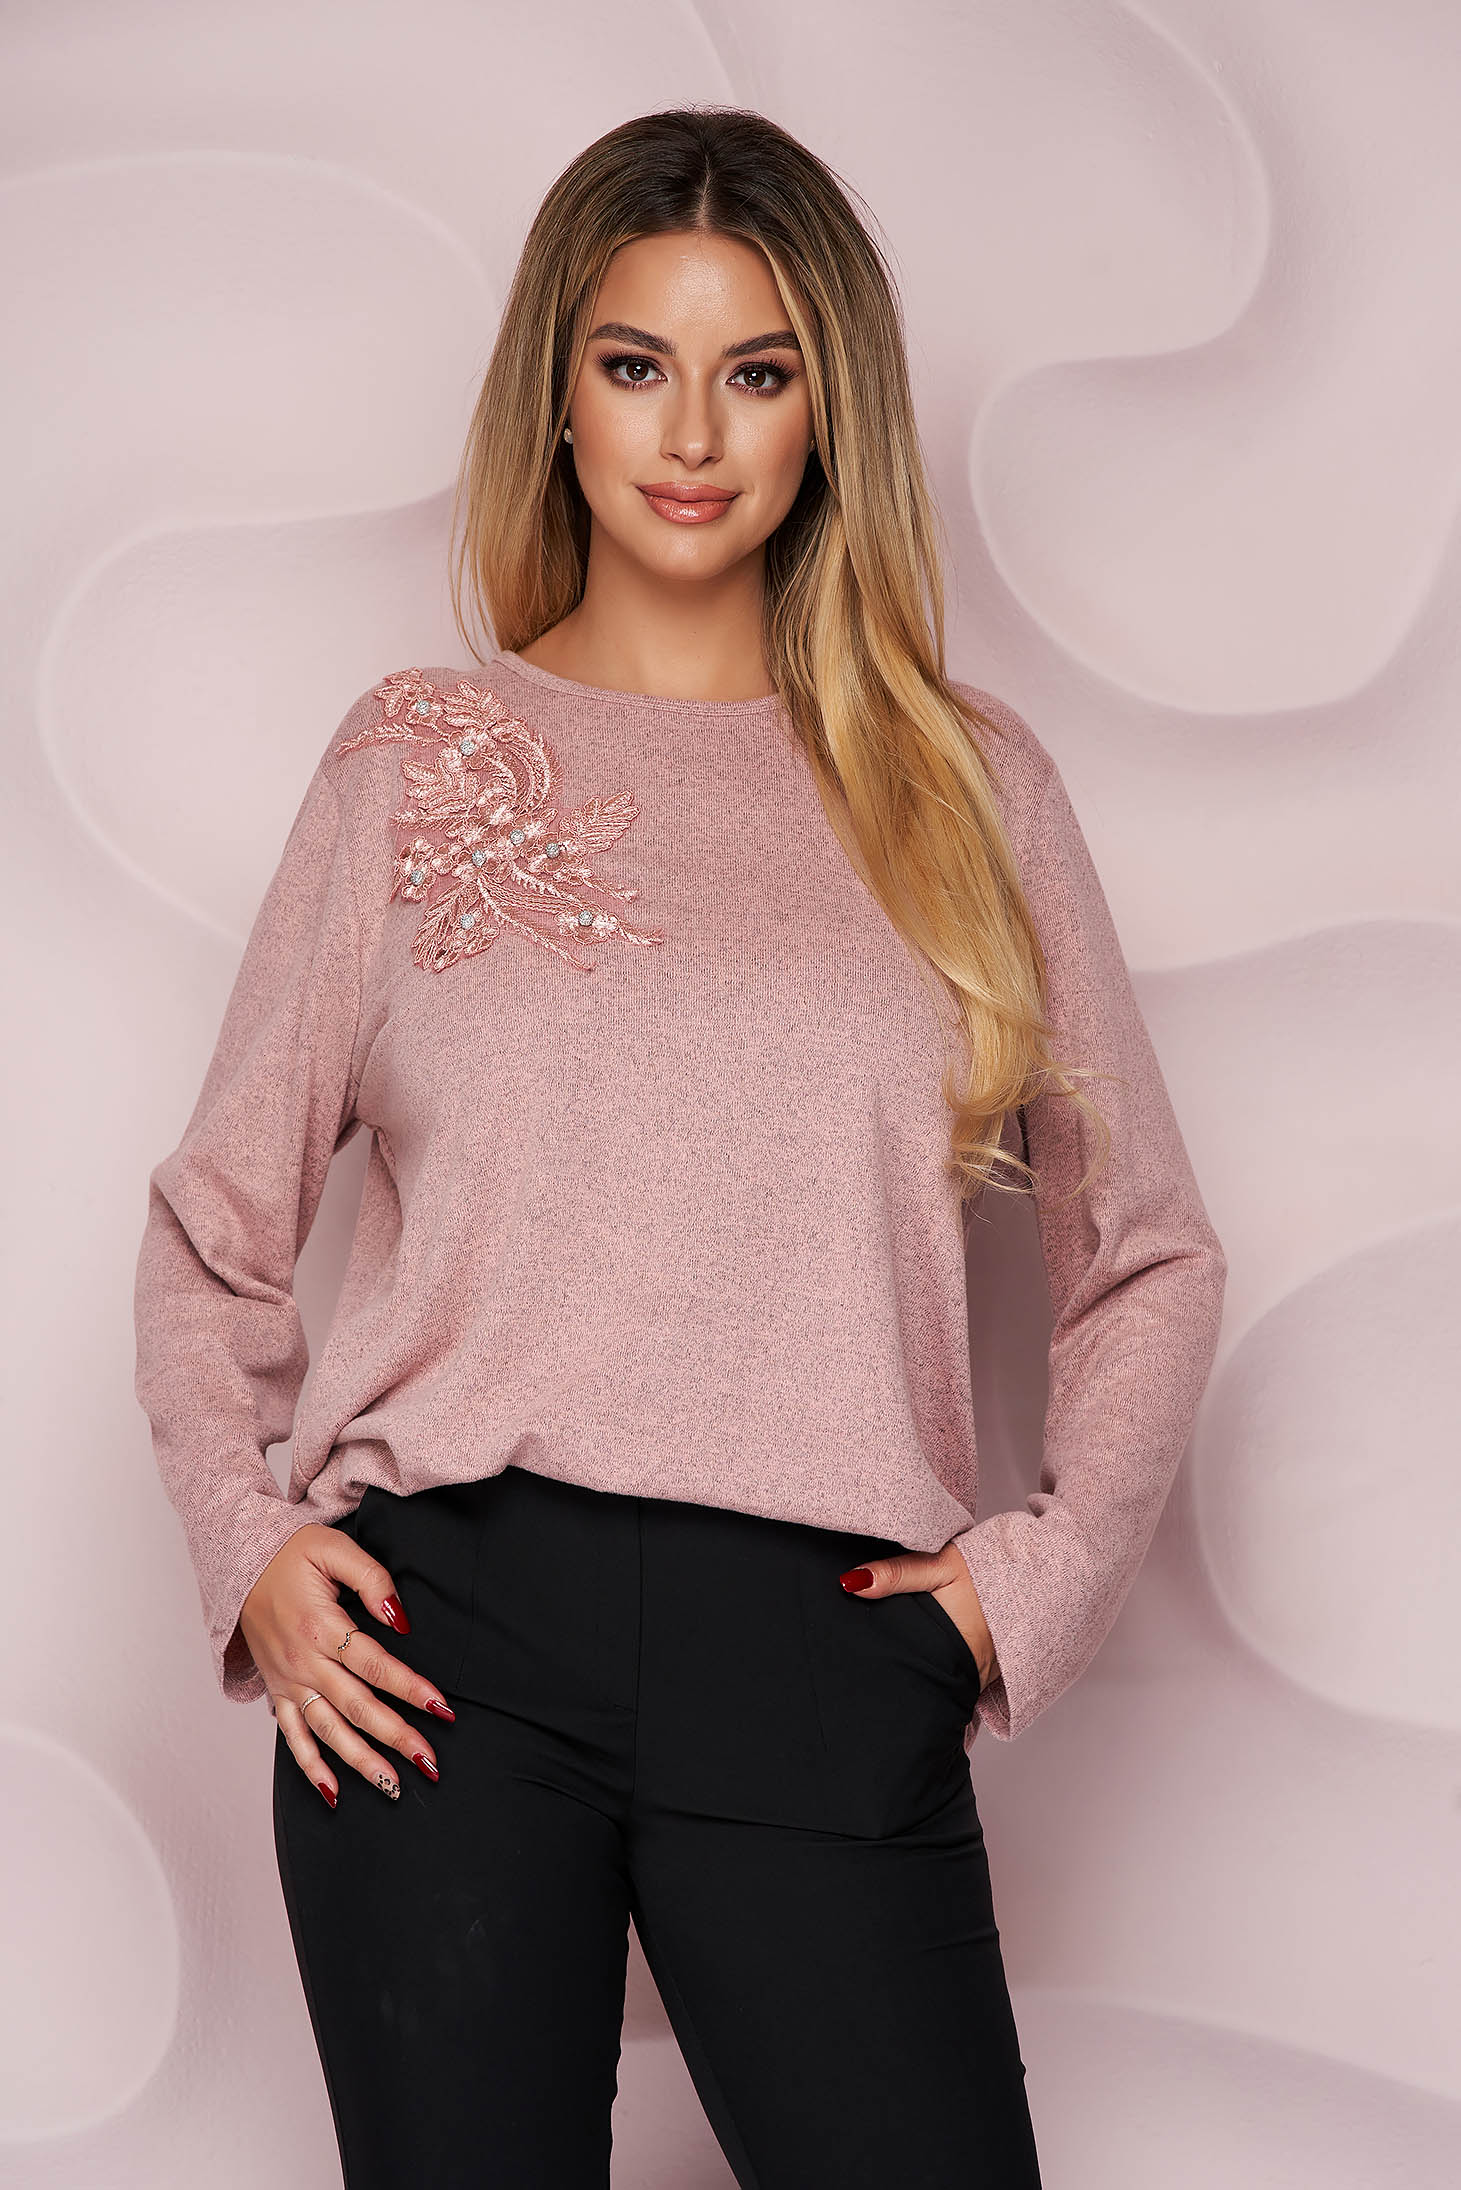 Pink sweater office loose fit thin fabric from elastic fabric knitted fabric